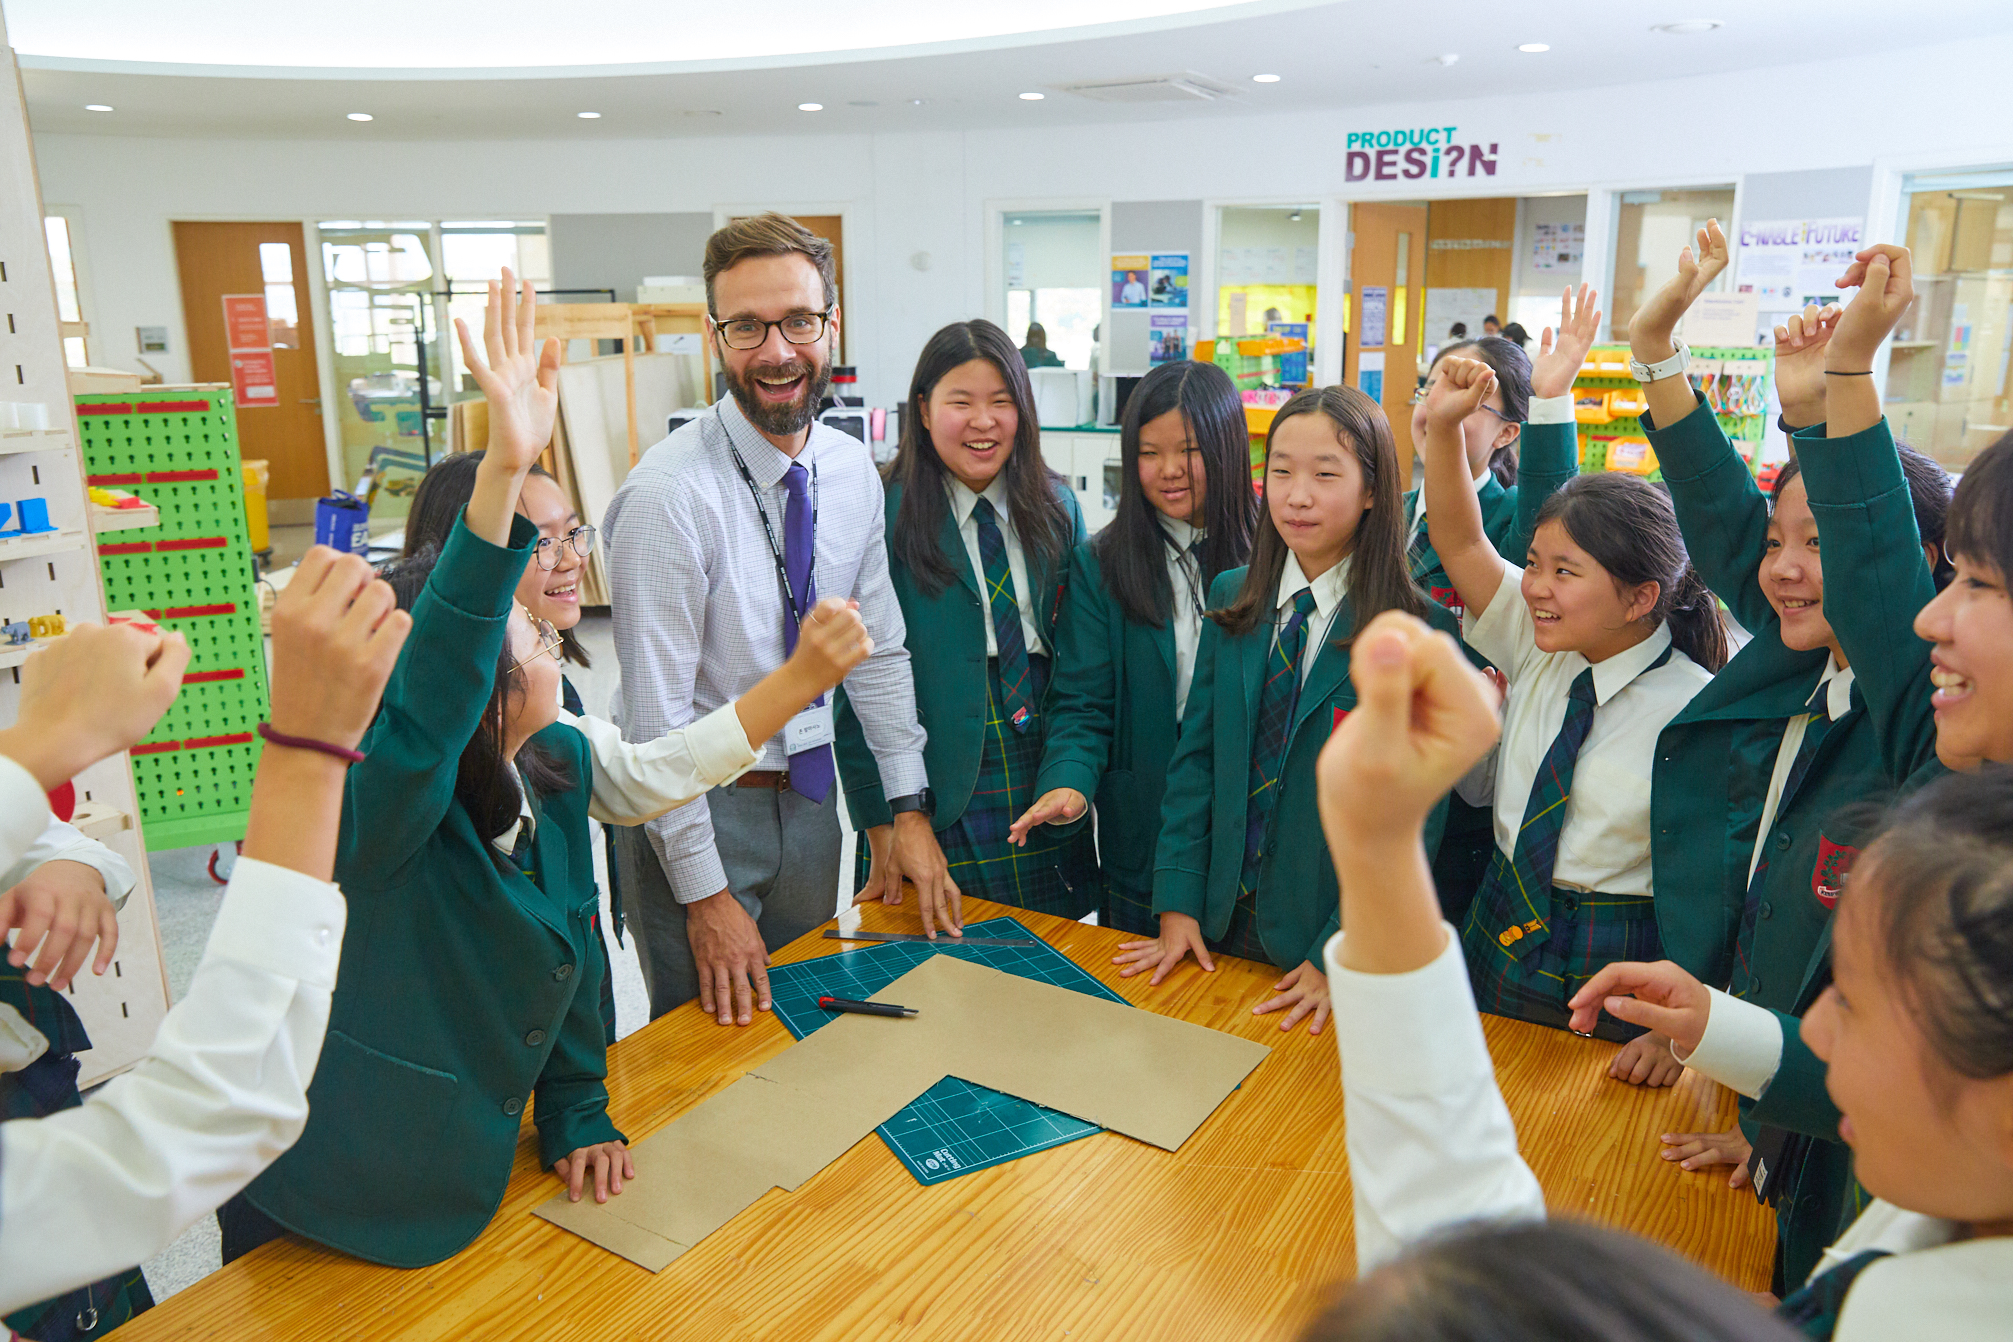 Future-focused schools that are ahead of the curve